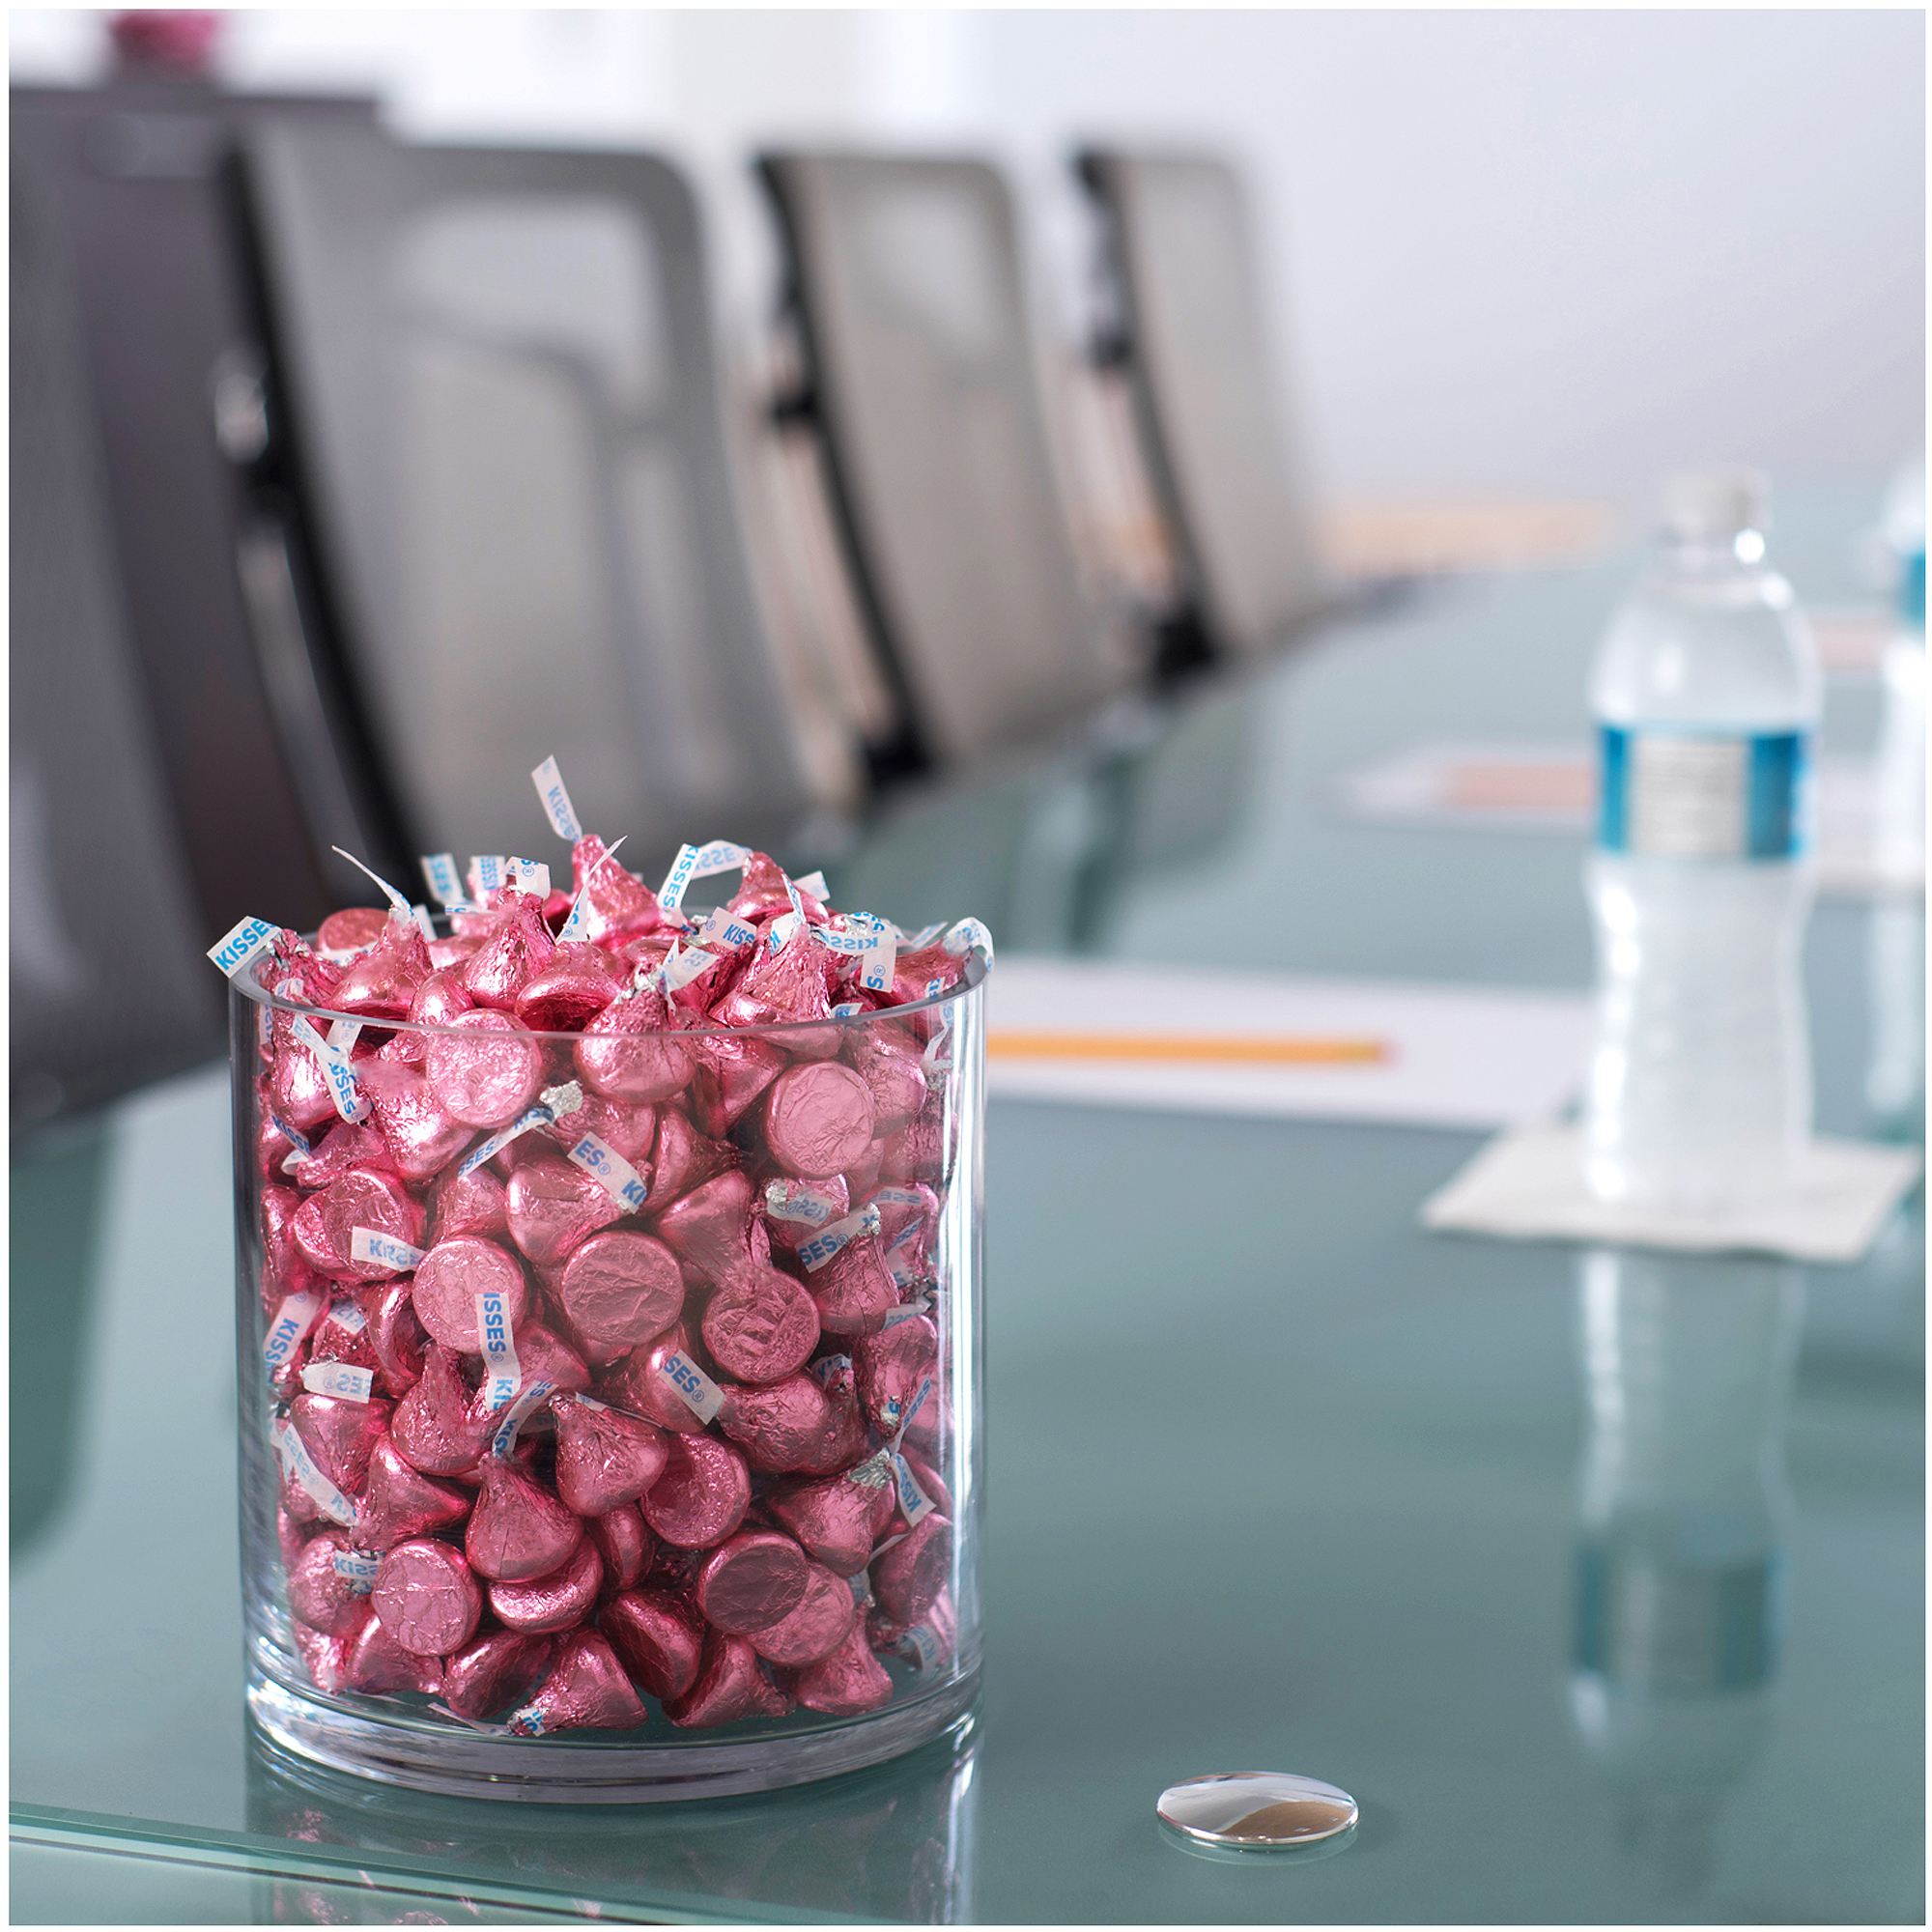 Kisses Milk Chocolate Candy Pink Foil, 4.1 lb - Online Only